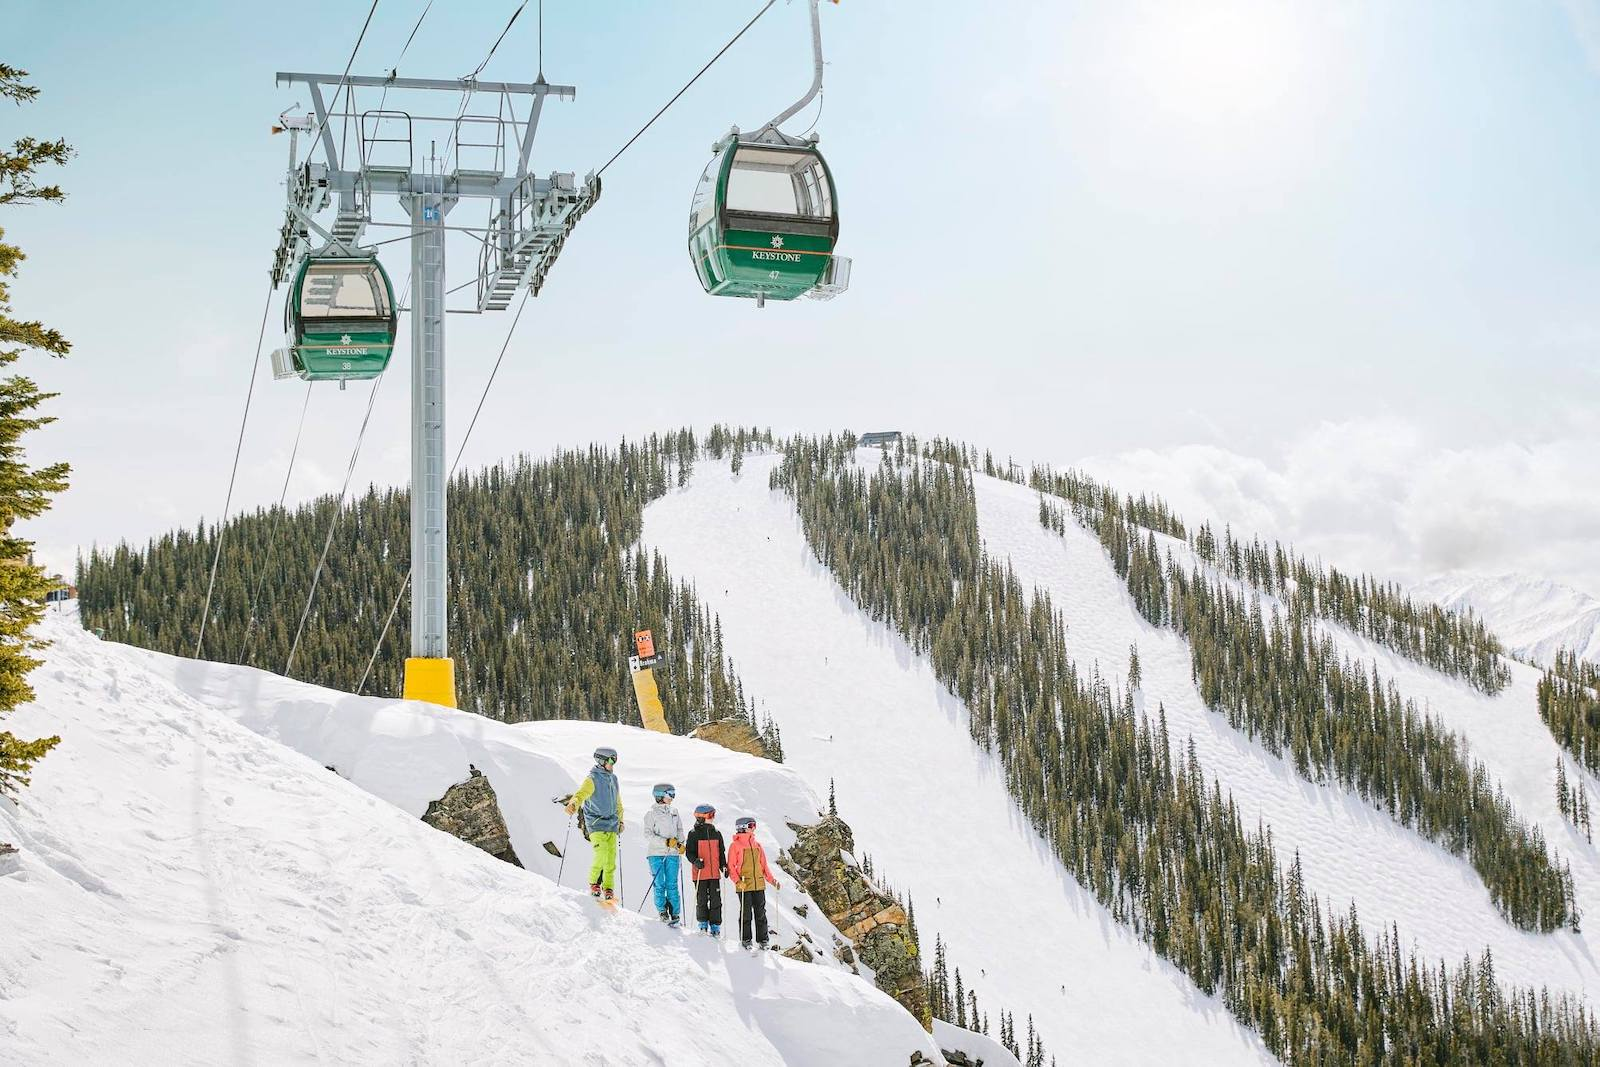 Image of the Outpost Gondola passing overs skiers and snowboarders at Keystone Resort in Colorado